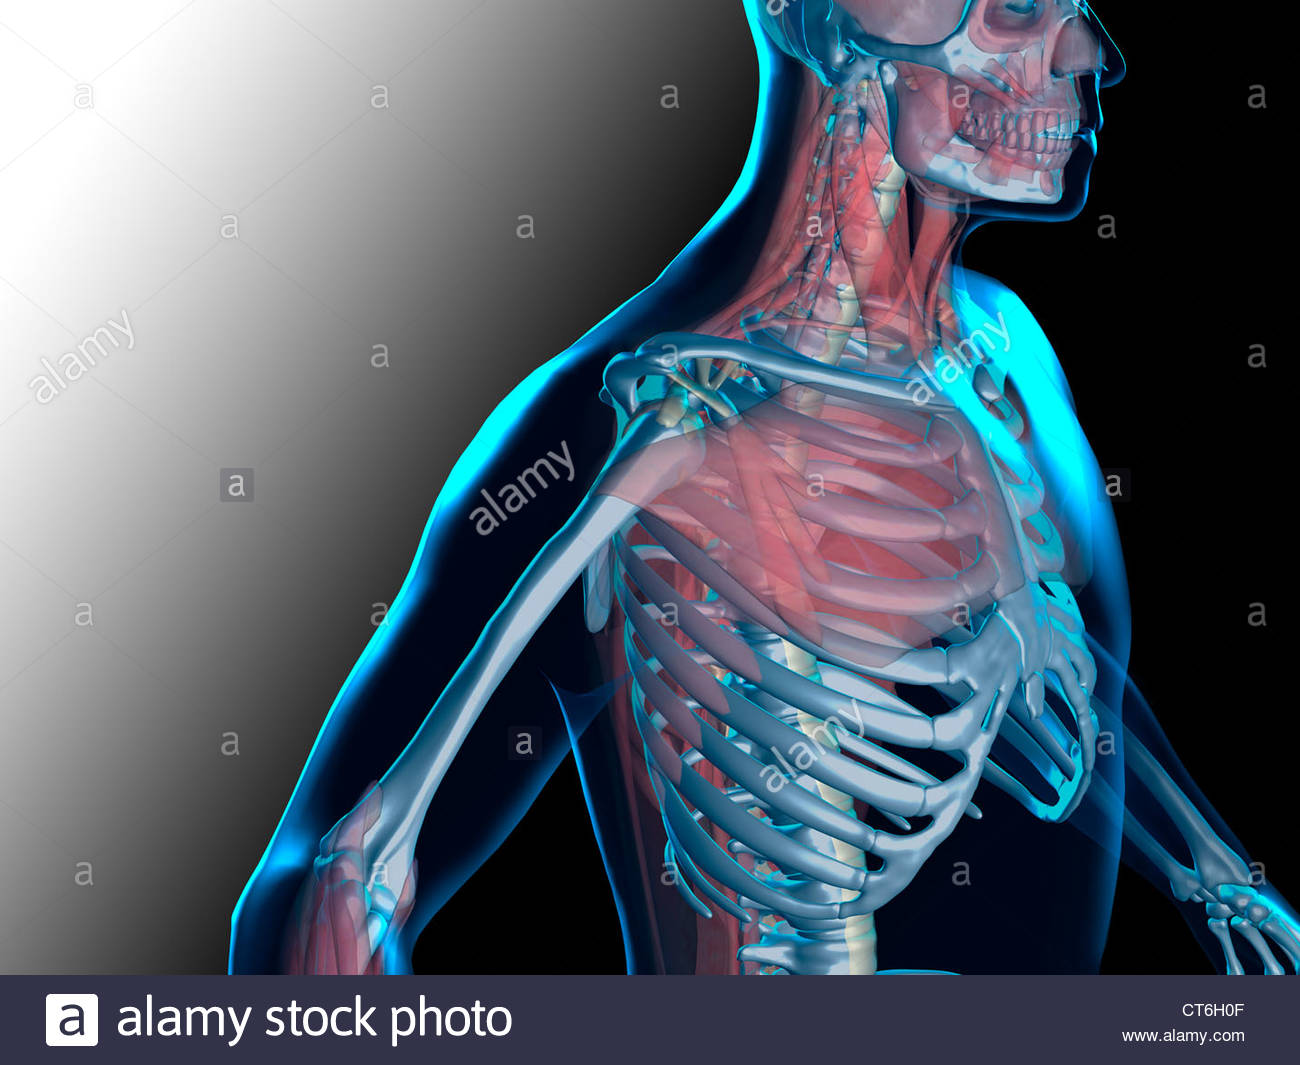 Bone Structure Of The Shoulder Stock Photos & Bone Structure Of The ...